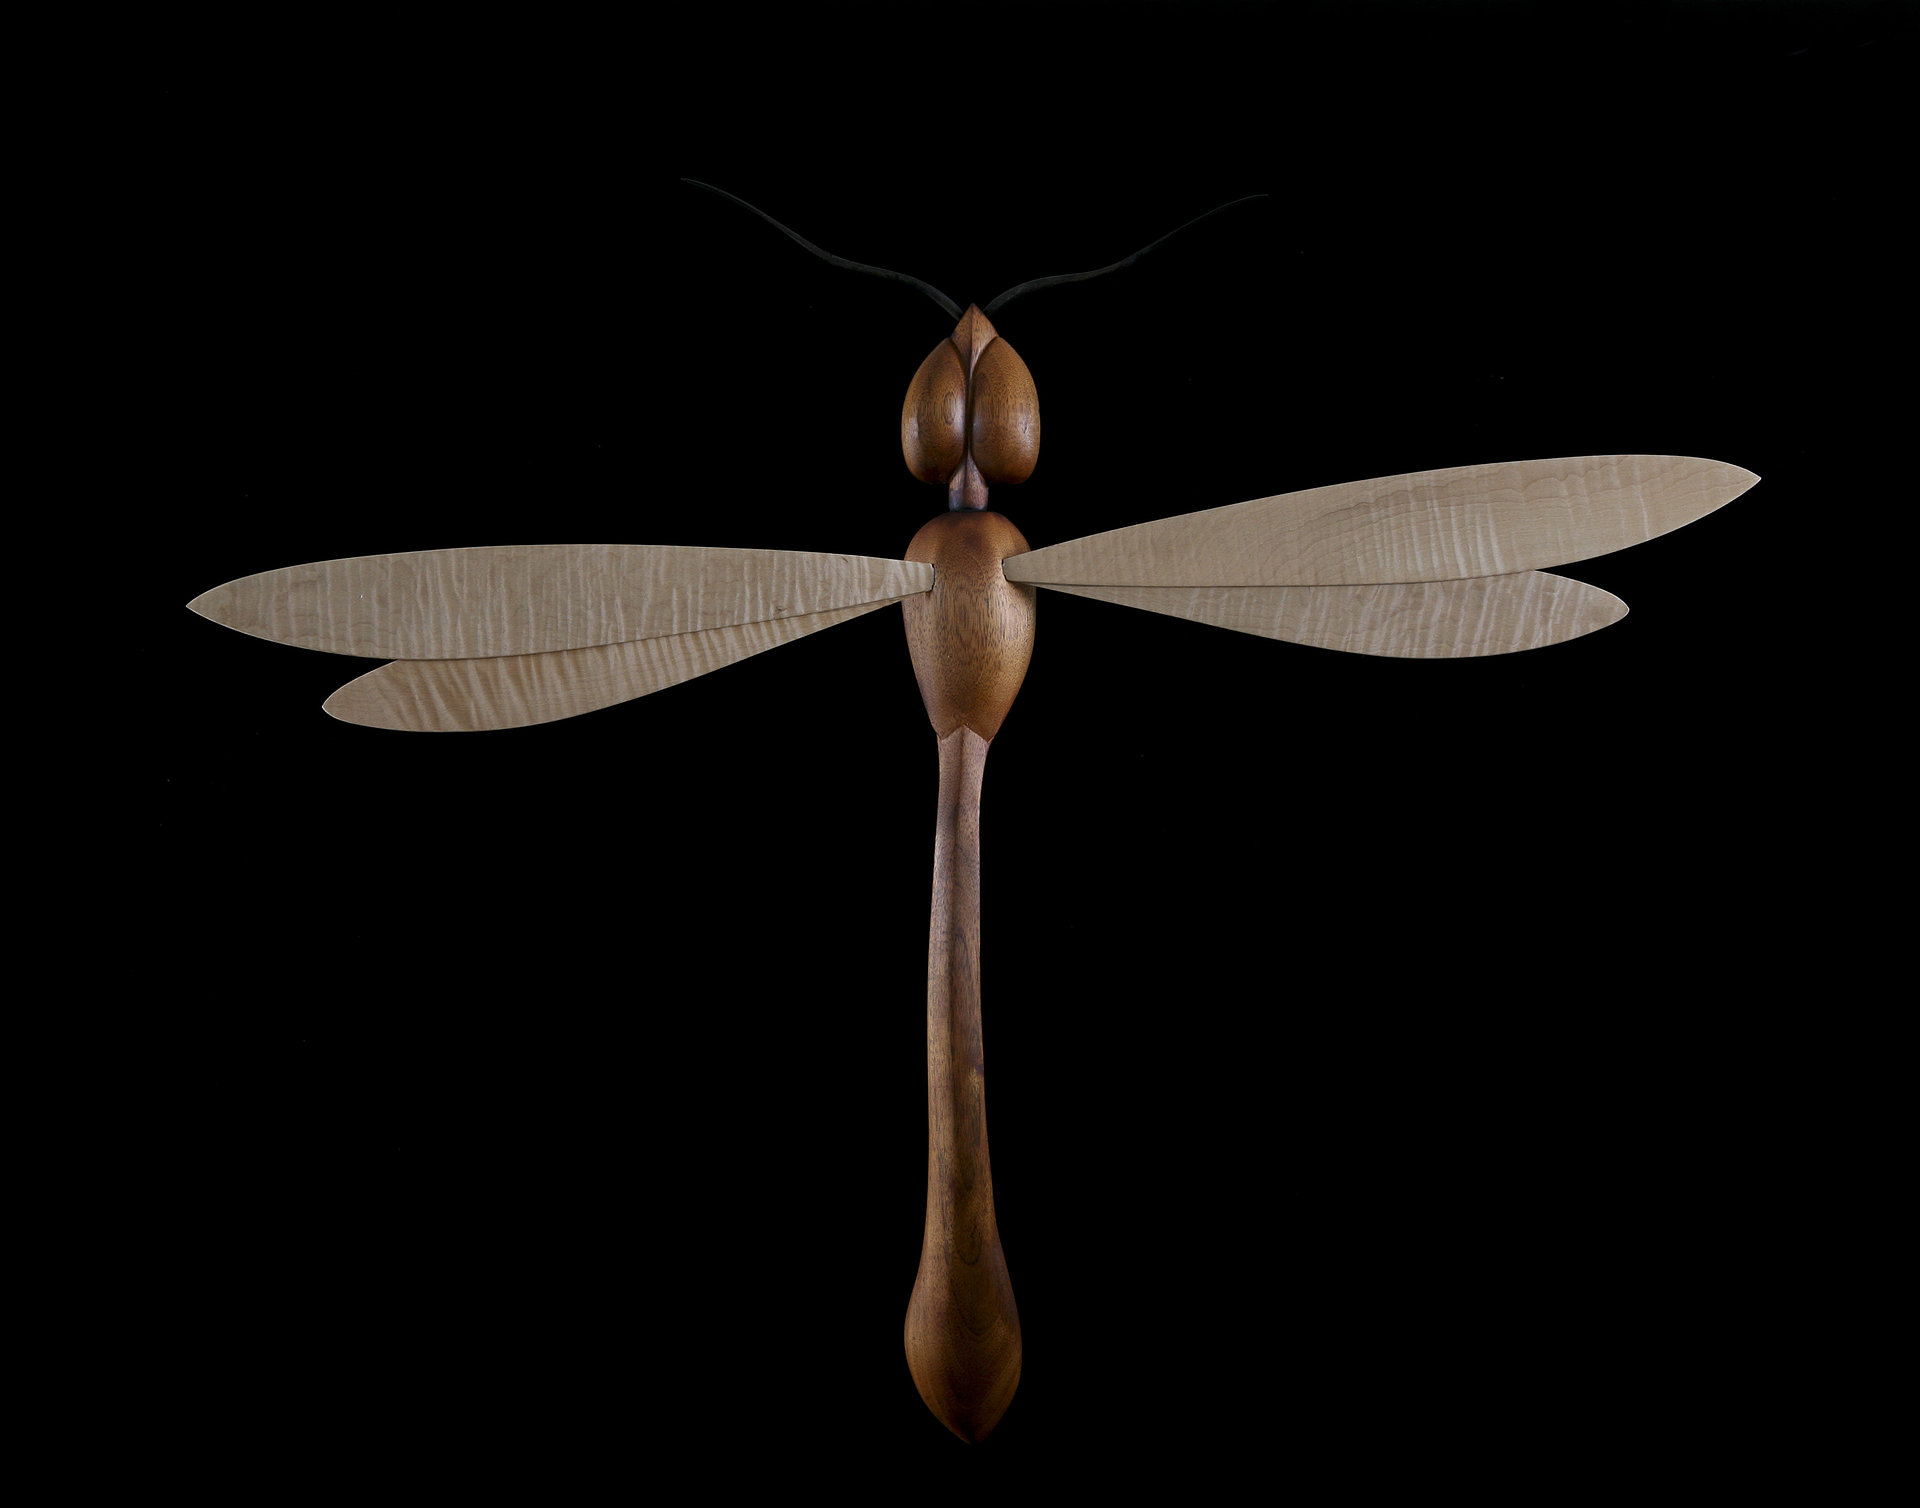 Contemporary Dragonfly Sculpture